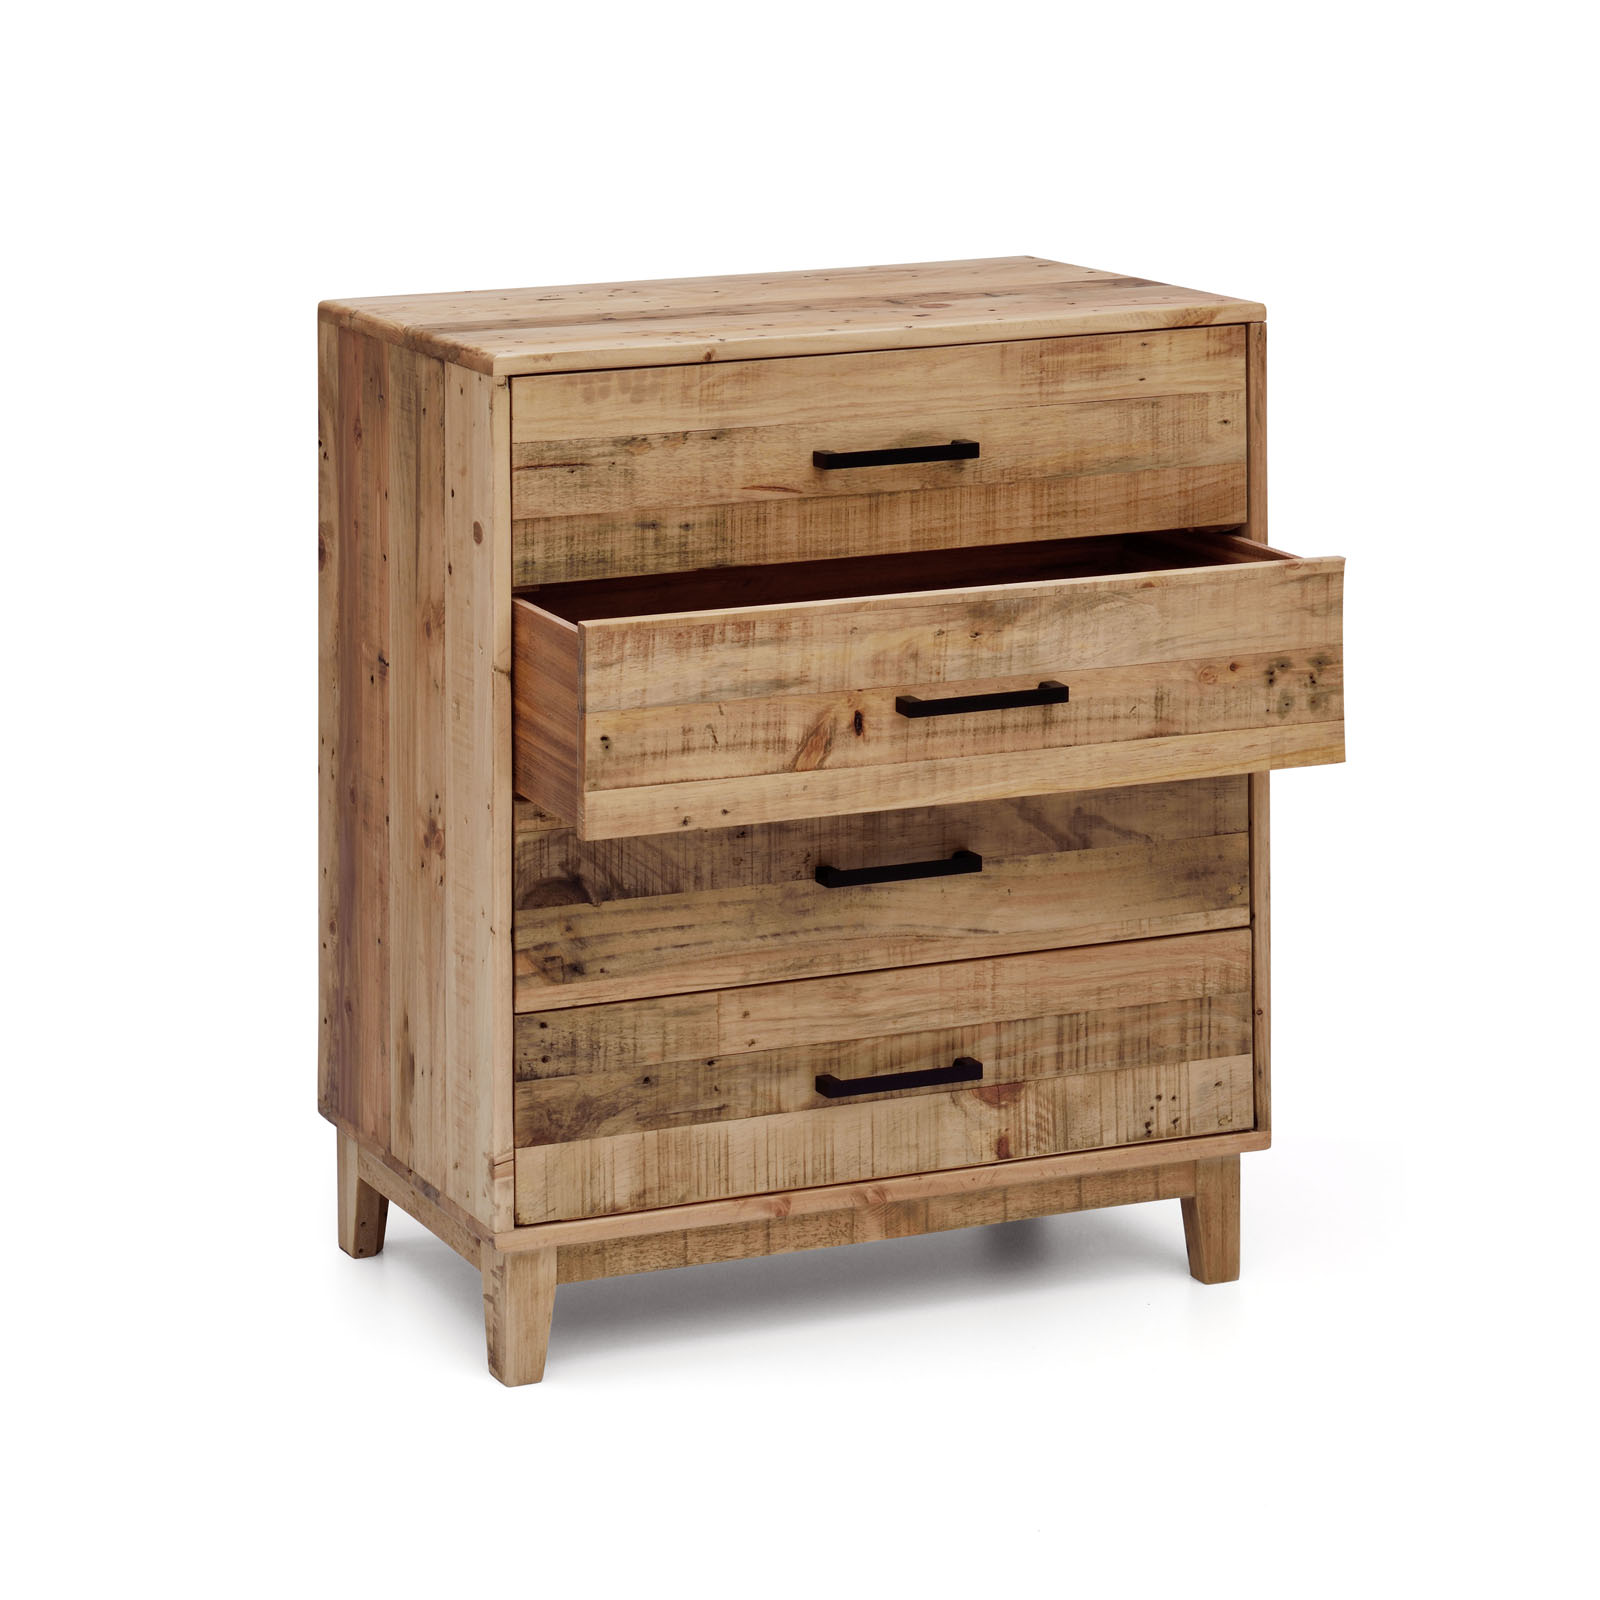 Portland solid recycled pine timber chest of 4 drawers for Portland reclaimed wood furniture